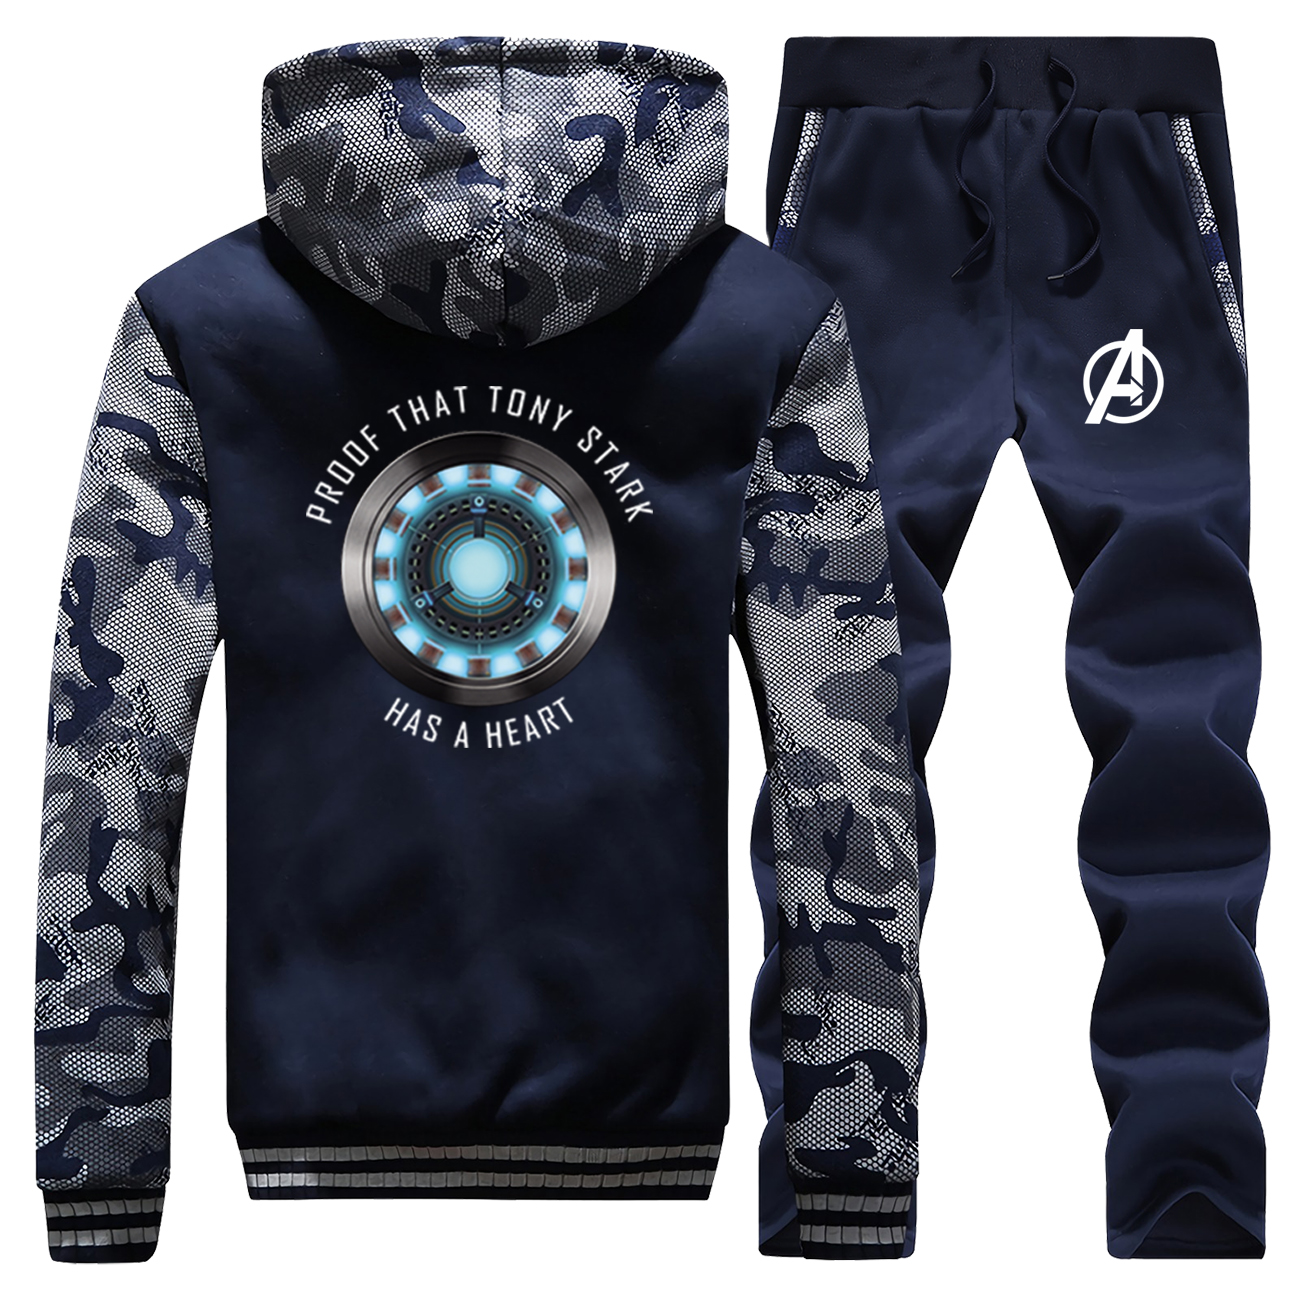 Iron Man Tony Stark Hoodies Pants Set I Love You 3000 Men Tracksuit Coat Track Suit Winter Thick Fleece Jacket Camo 2 Piece Sets